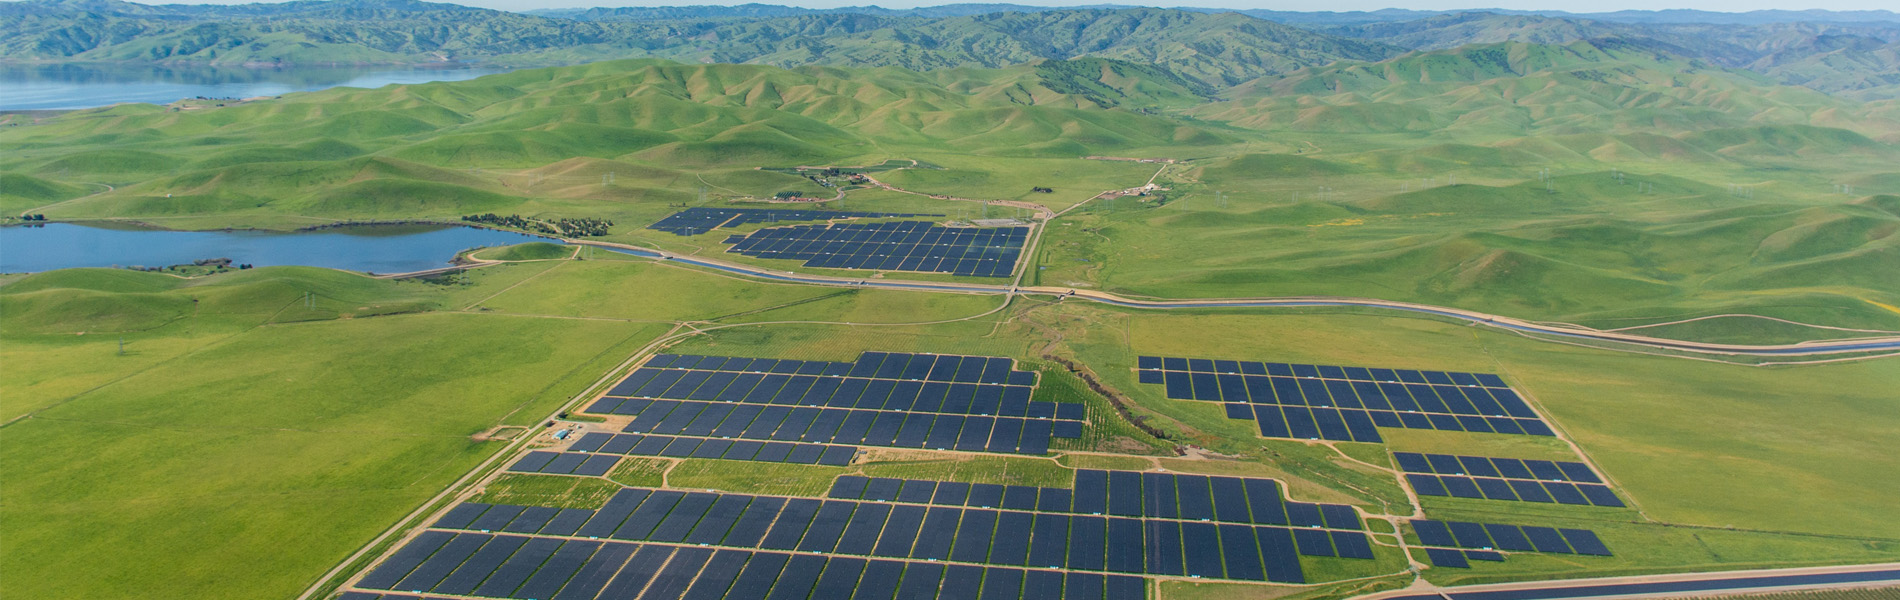 hight resolution of drones robots and fully integrated design third generation sunpower oasis platform reinvents solar power plants